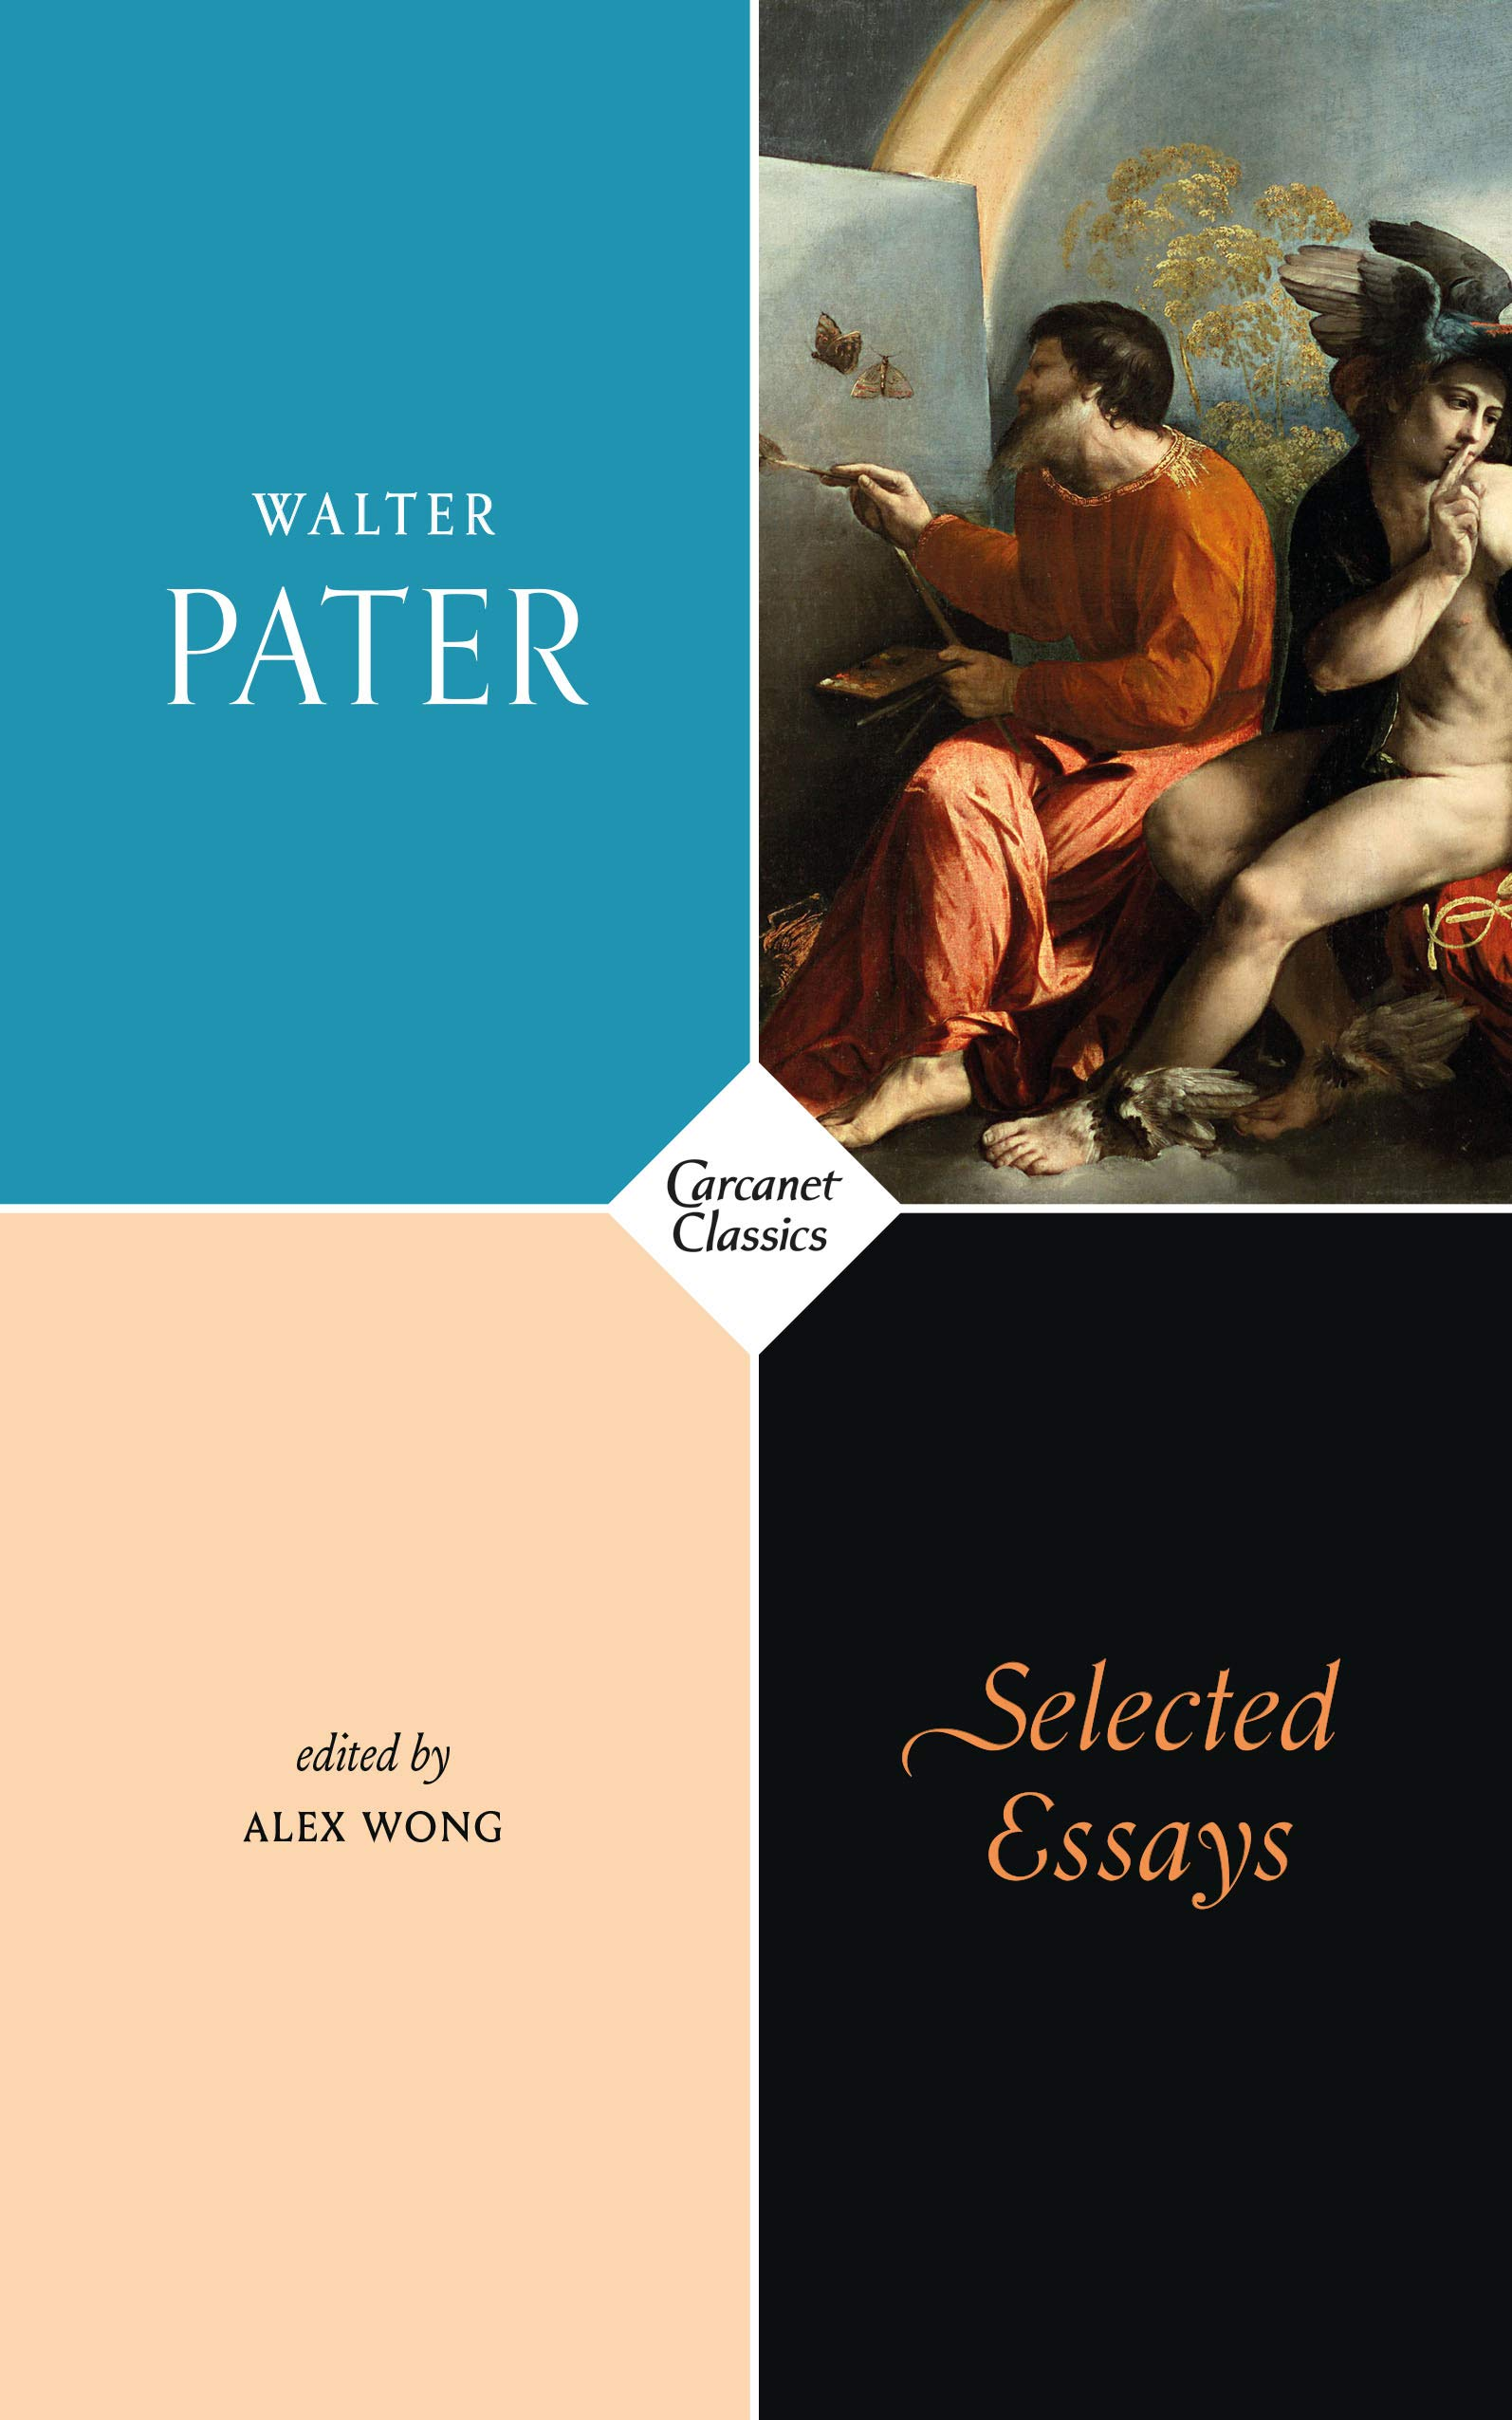 Walter Pater, Selected Essays, ed. Alex Wong